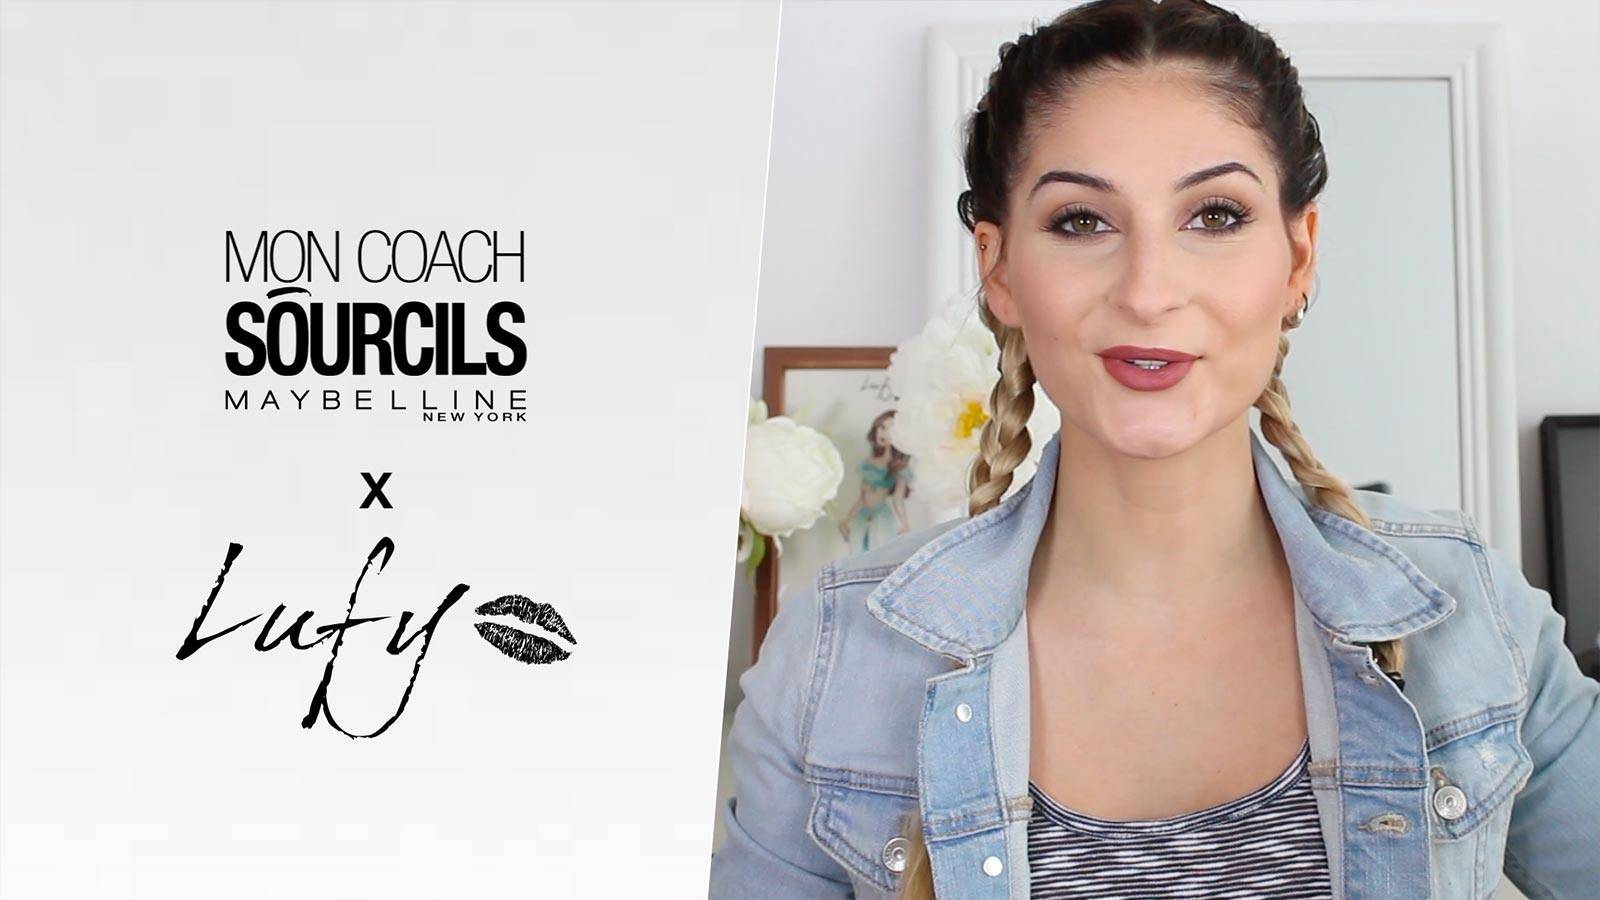 maybelline-tuto-makeup-sourcils-lufy-video-16x9